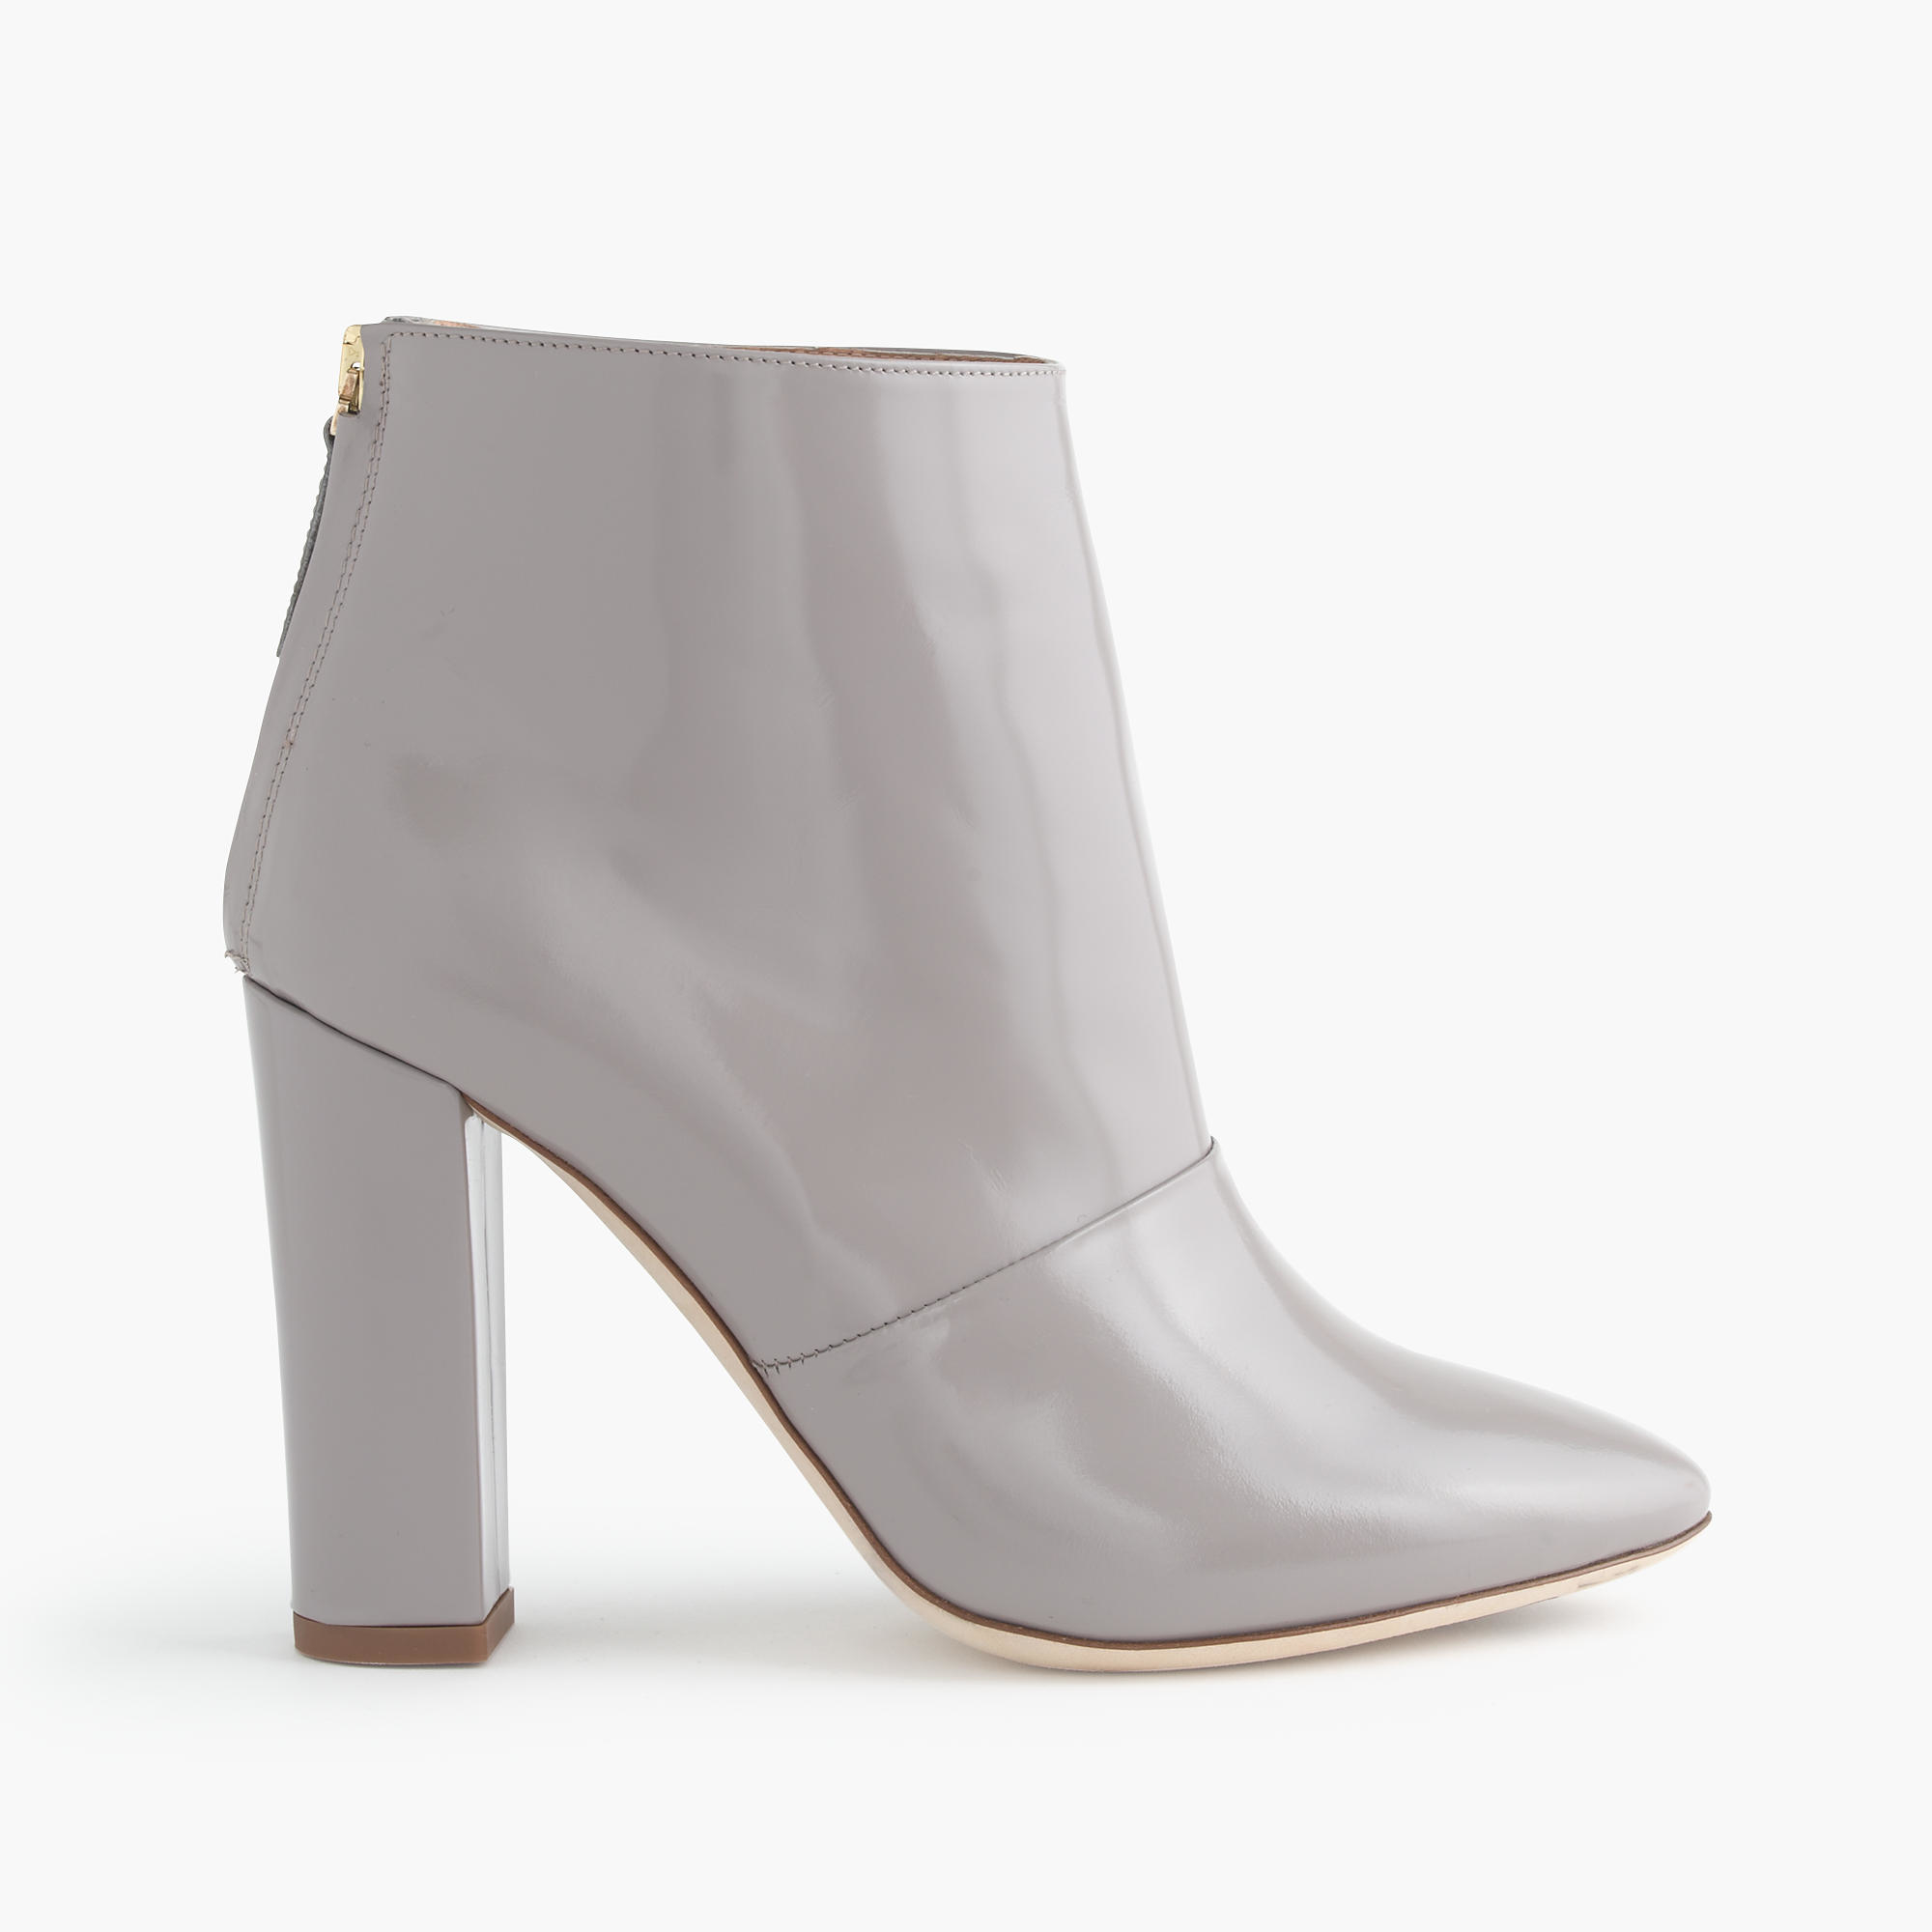 j crew adele glossy leather ankle boots in gray lyst